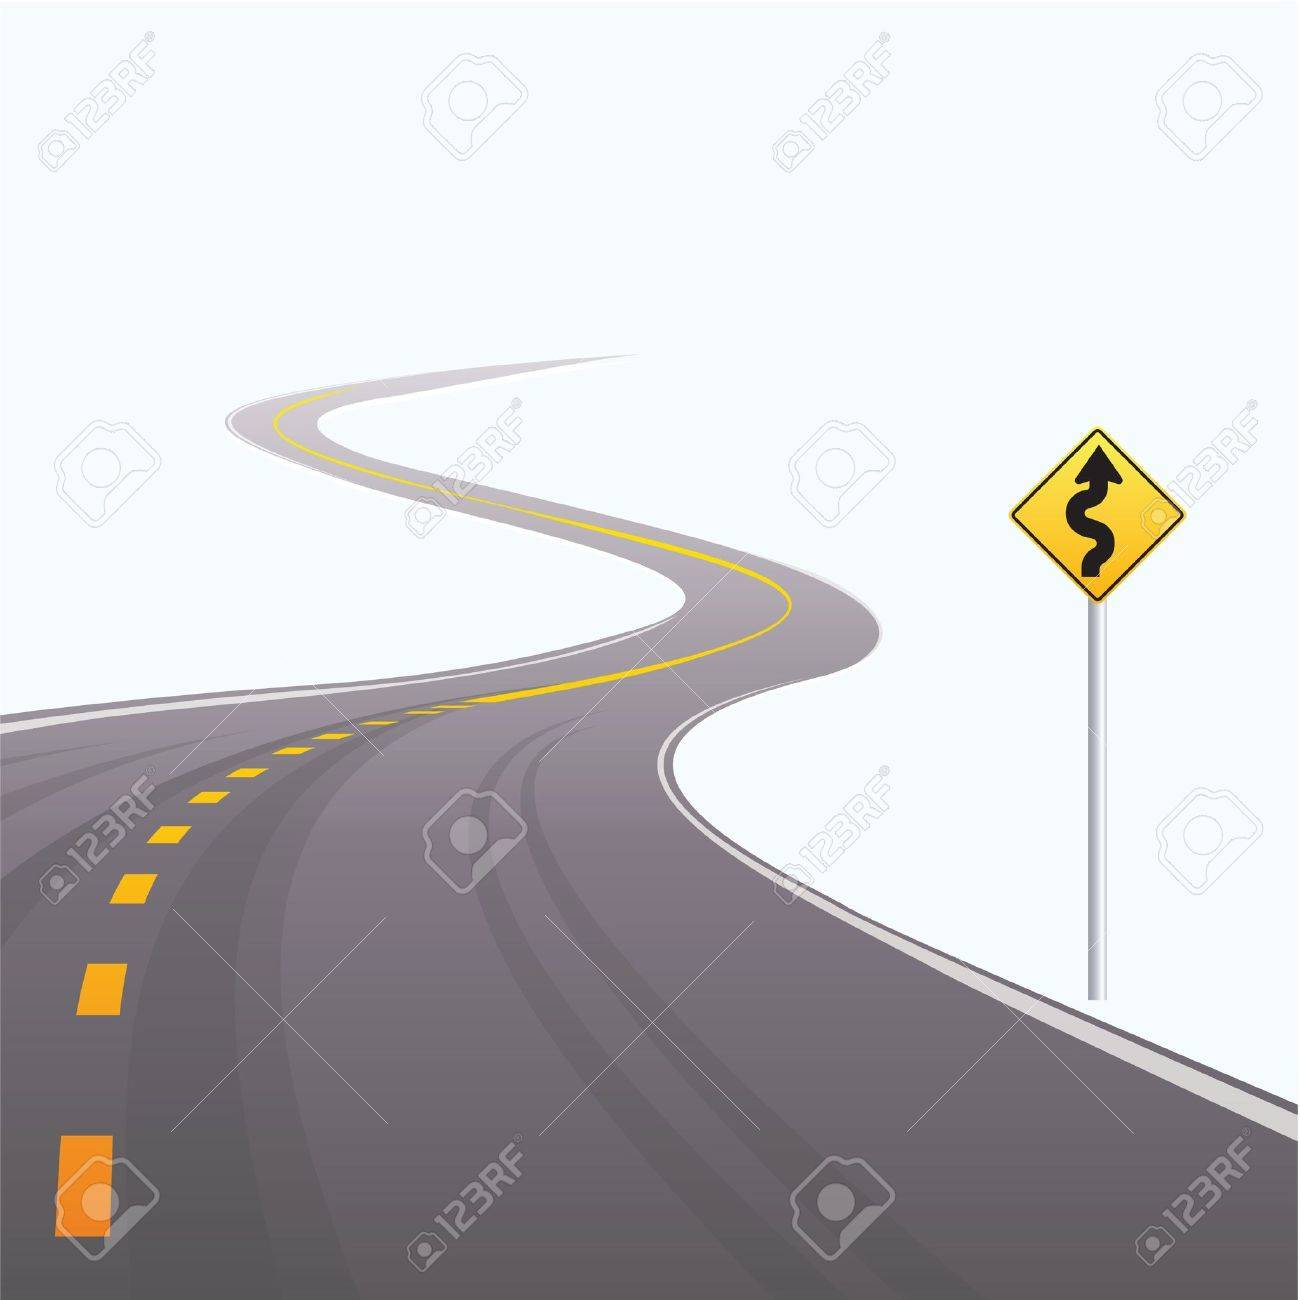 The asphalted road leaving in a distance on a white background Stock Vector - 10422238